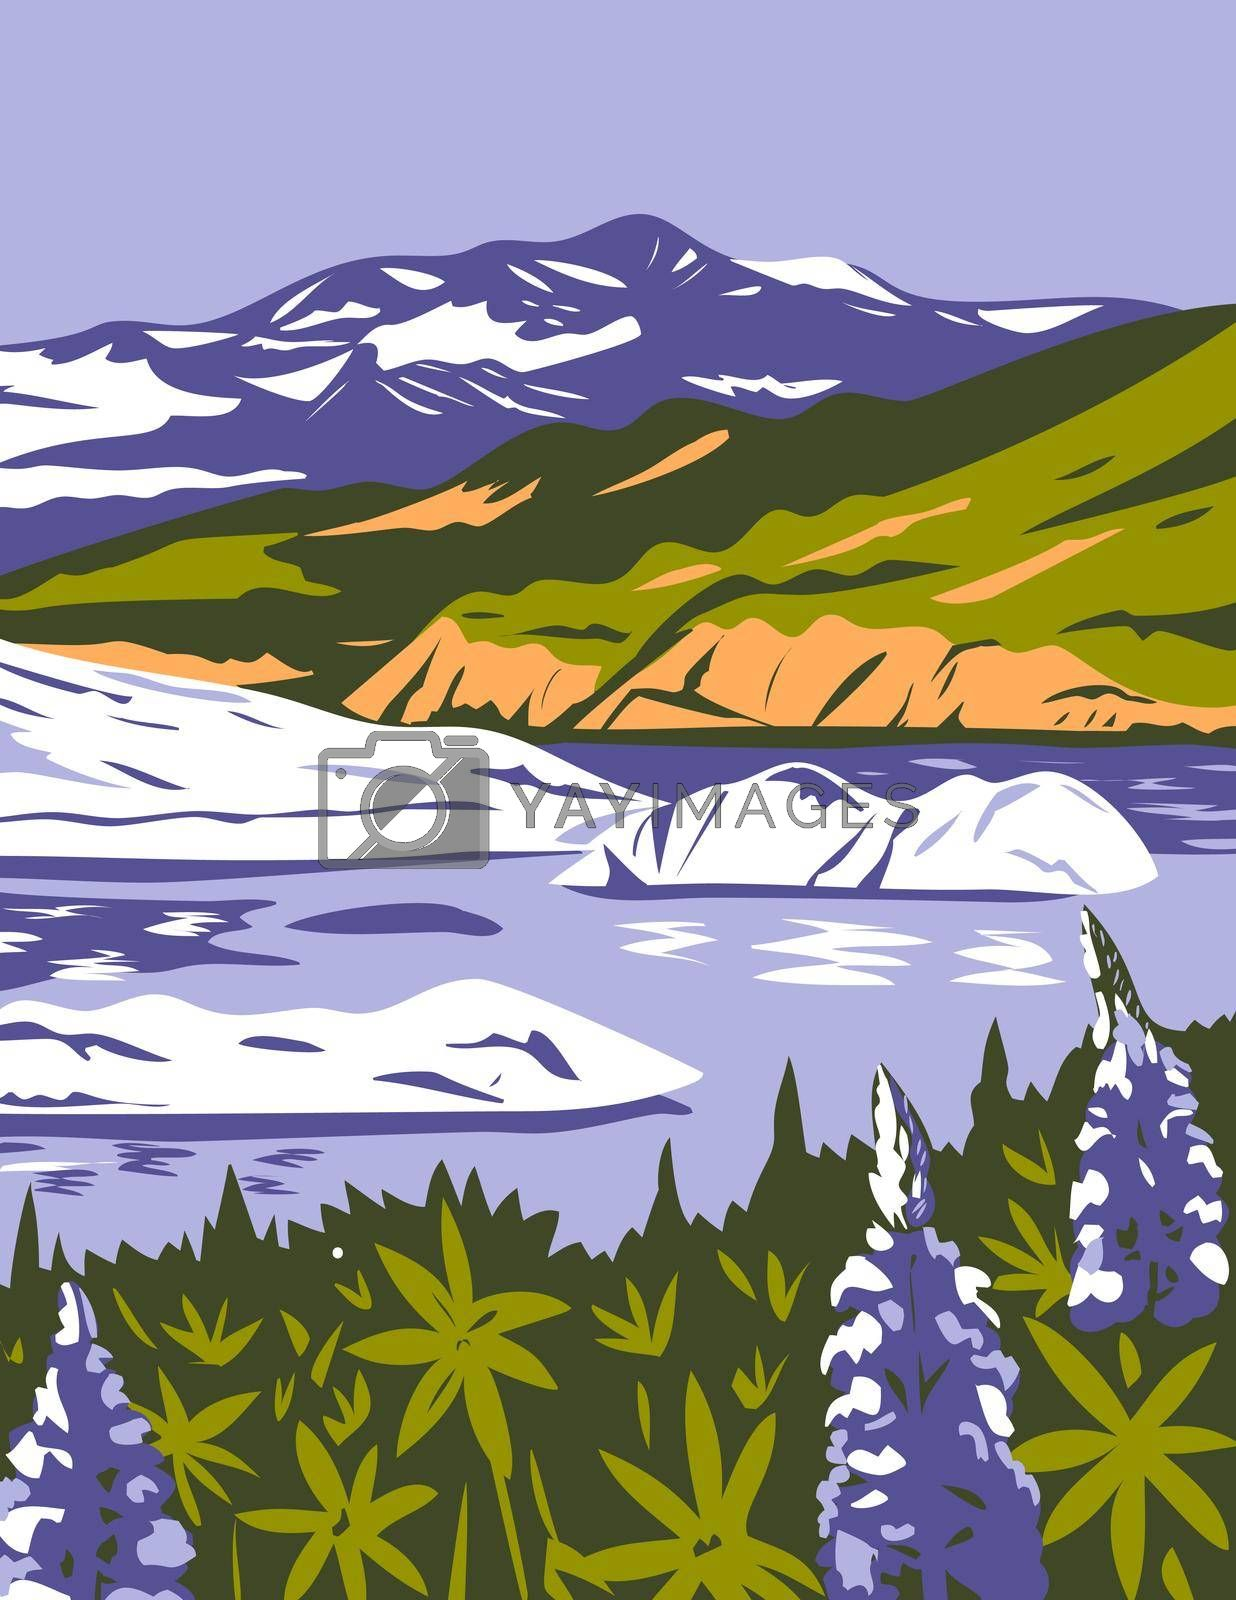 WPA poster art of the Wrangell-St. Elias National Park and Preserve with purple lupins in Nizina Lake in Alaska, United States of America in works project administration or federal art project style.